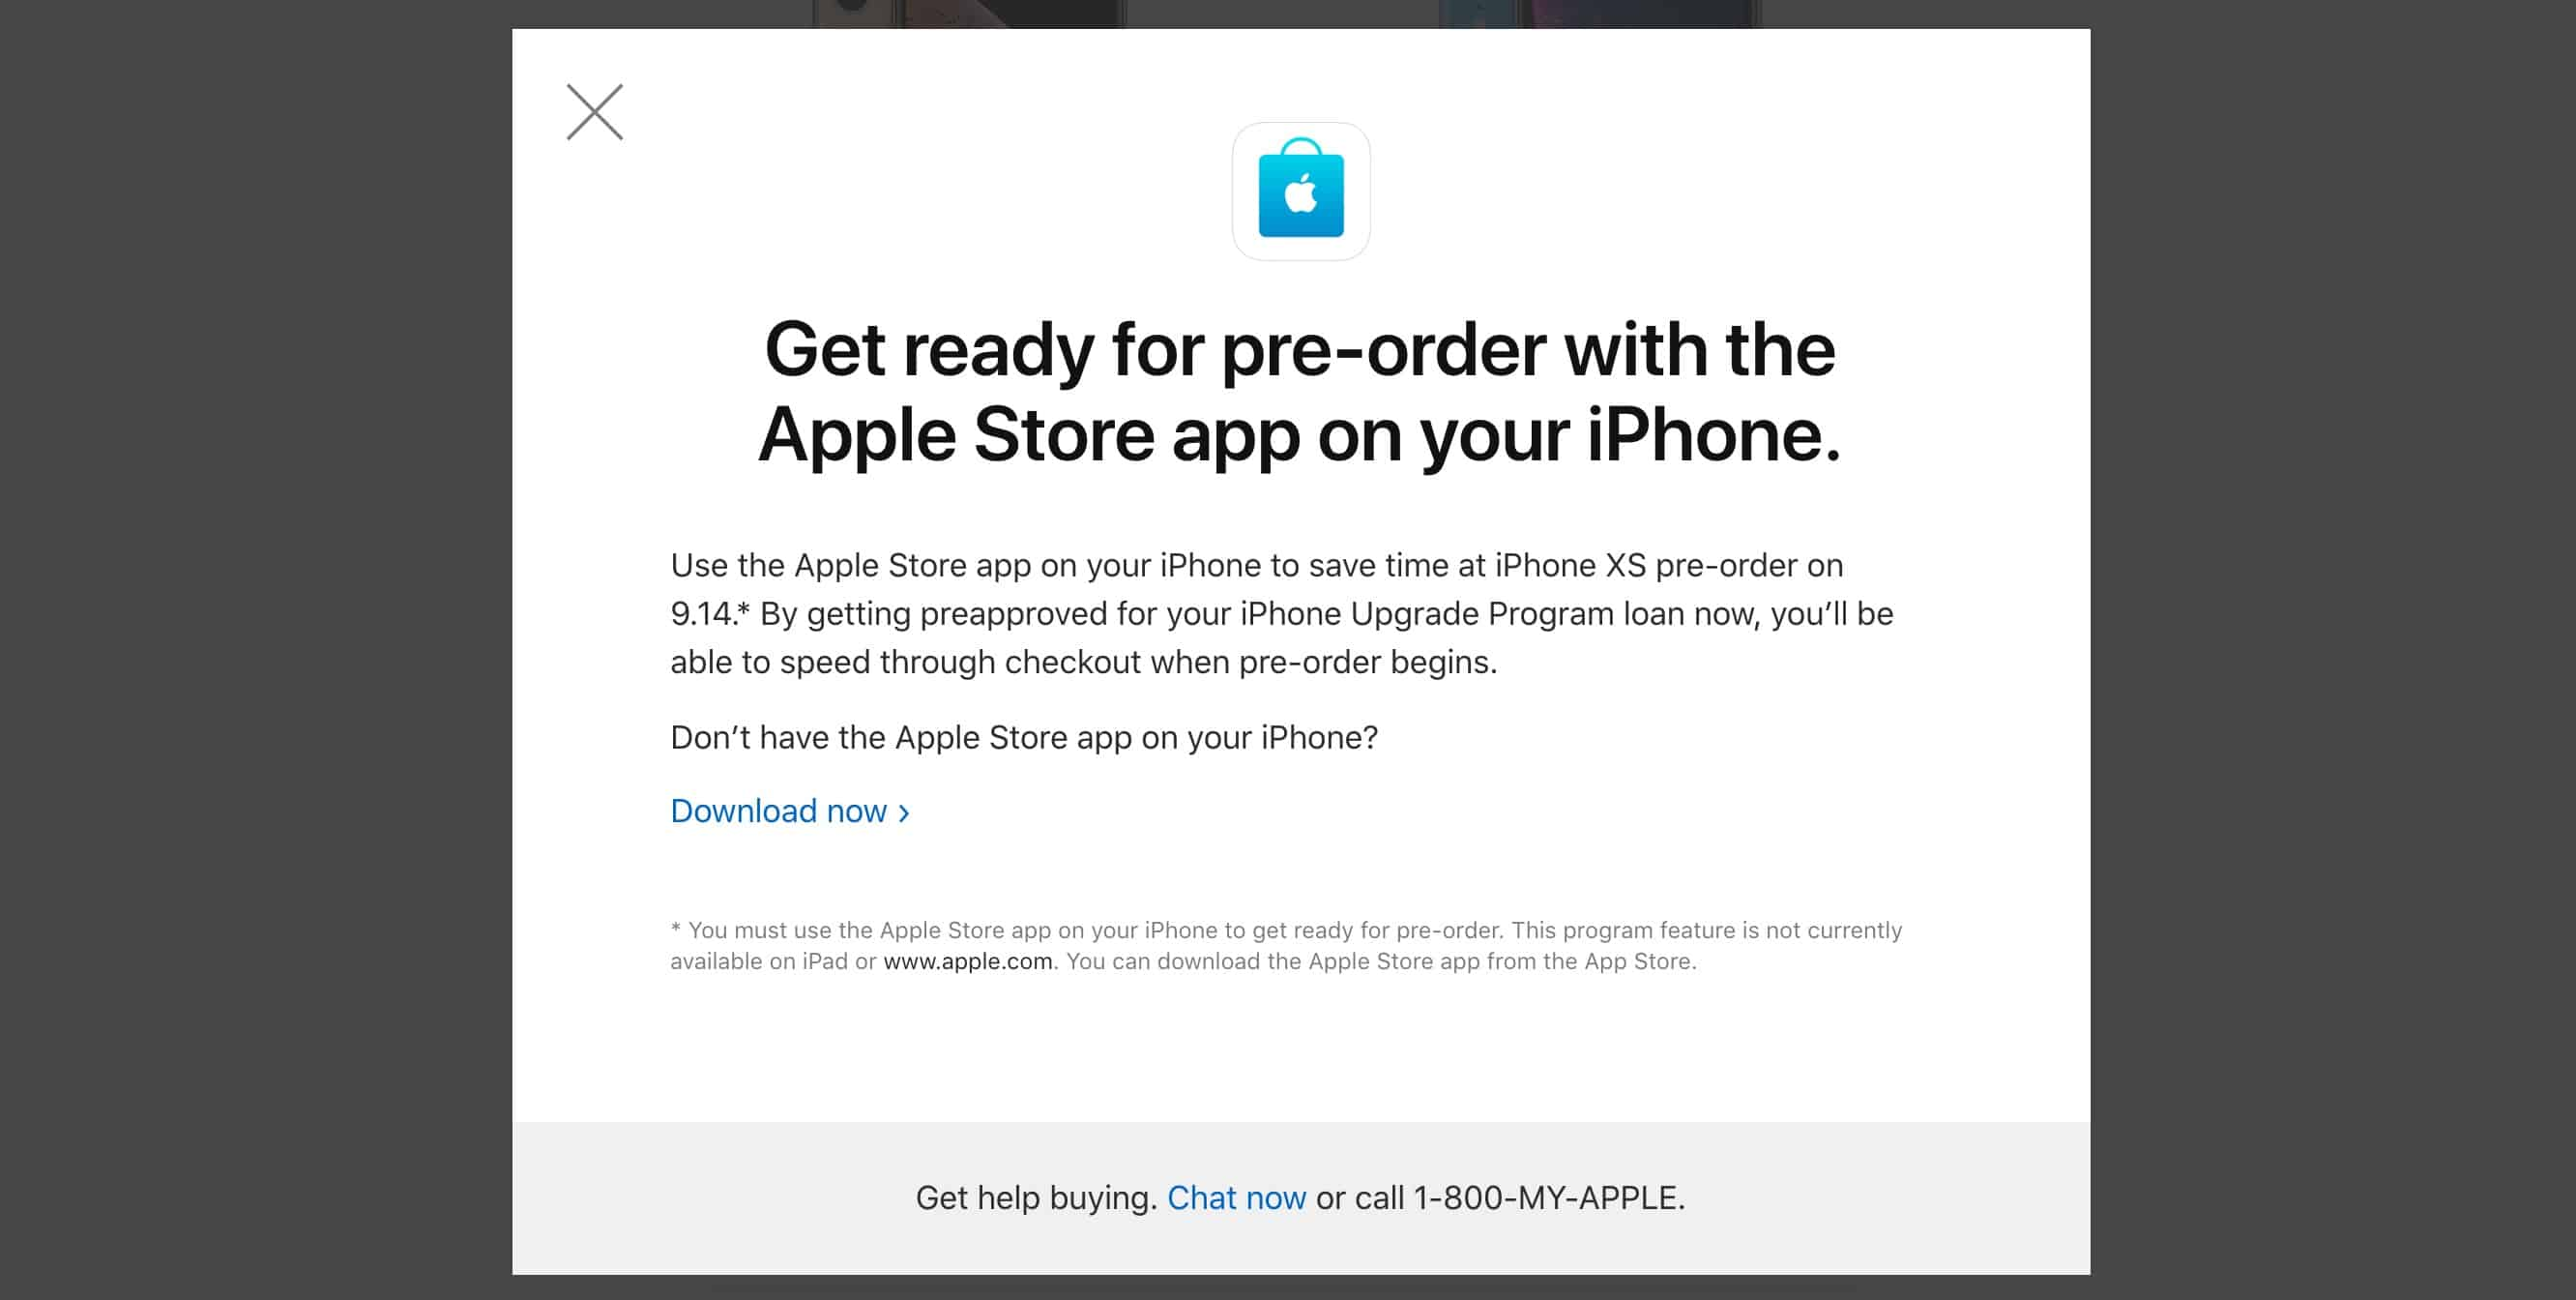 The Apple Store app is the best way to pre-order a new iPhone XS.